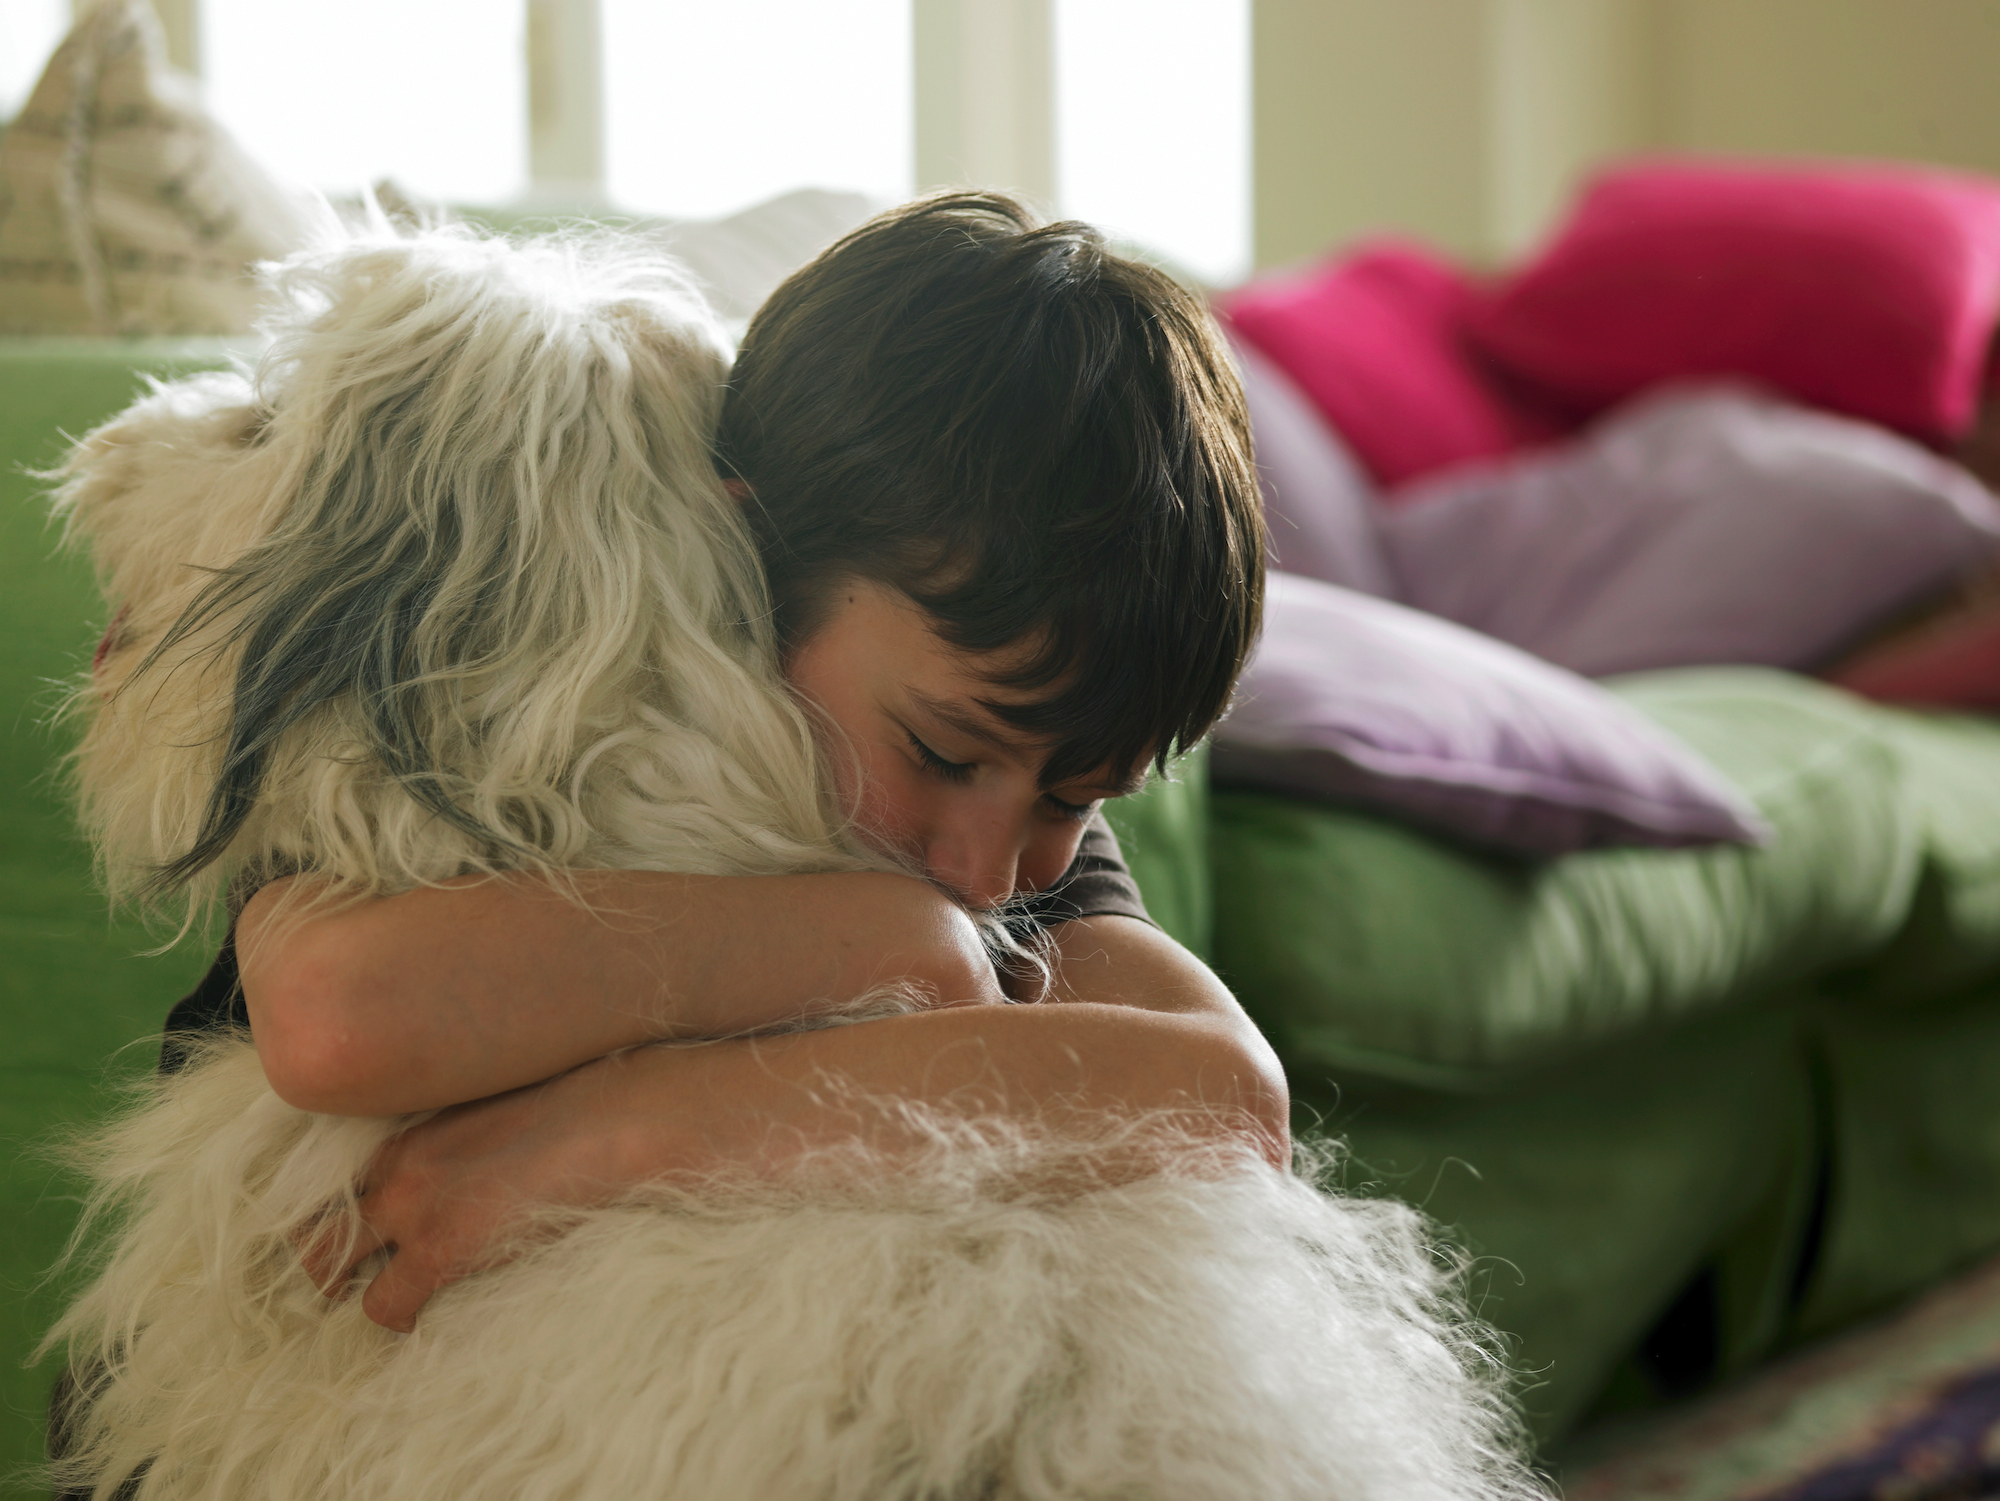 The Truth About Your Kids' Bond With the Family Pet